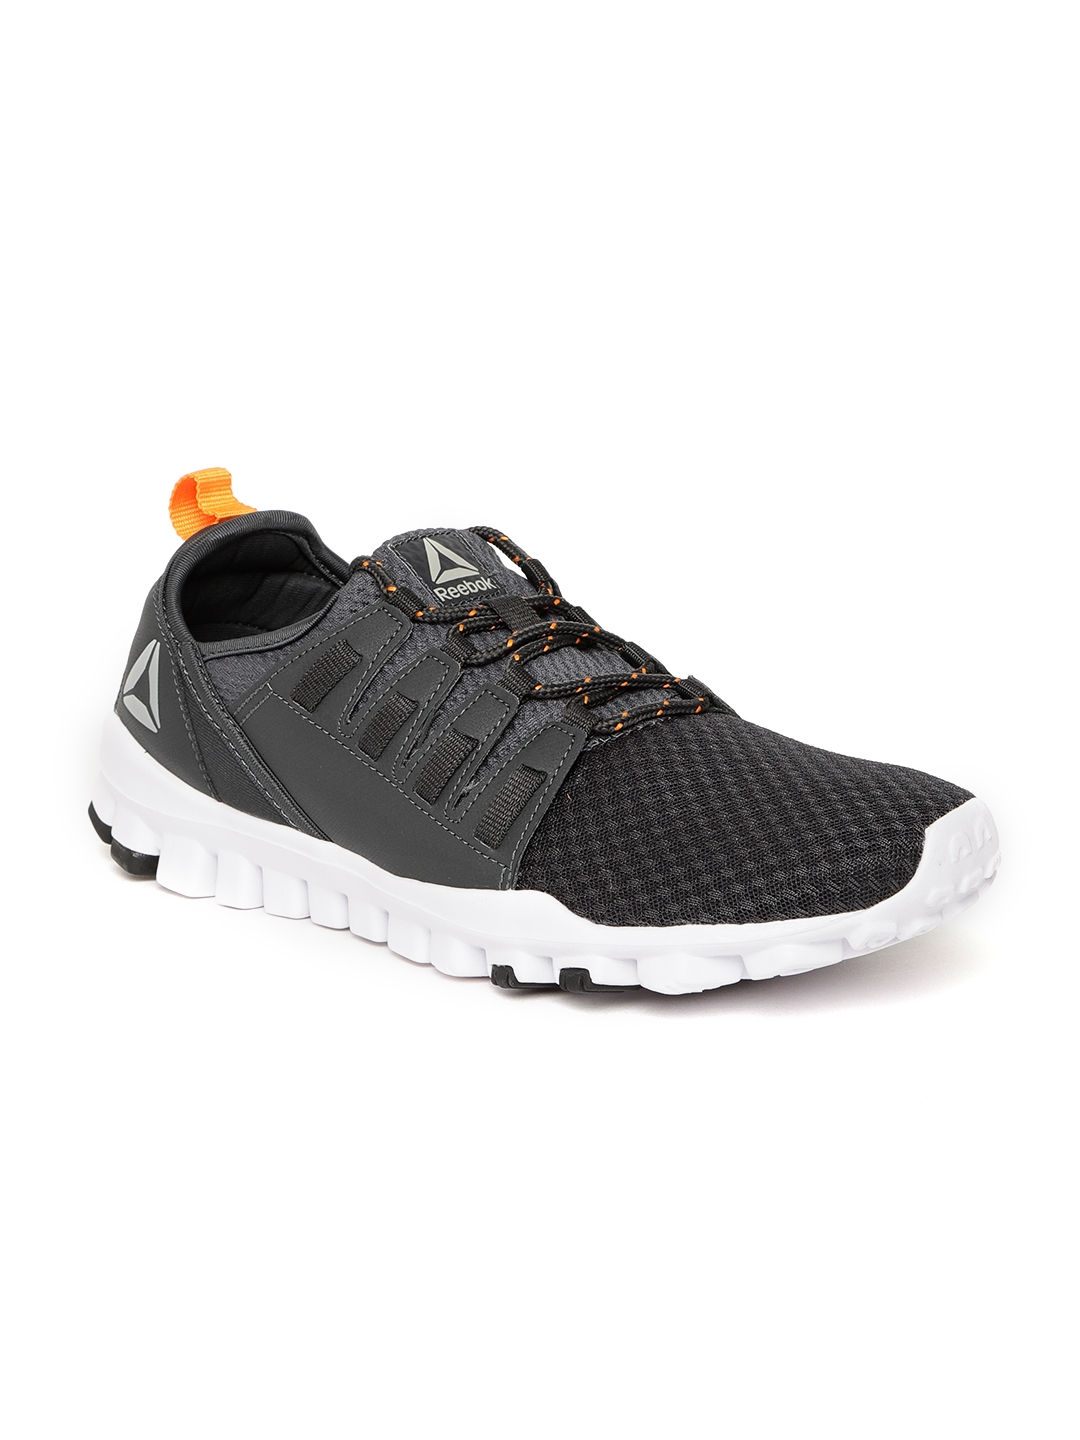 Buy Reebok Men Charcoal Grey Identity Flex Xtreme LP Running Shoes ... df5063a97